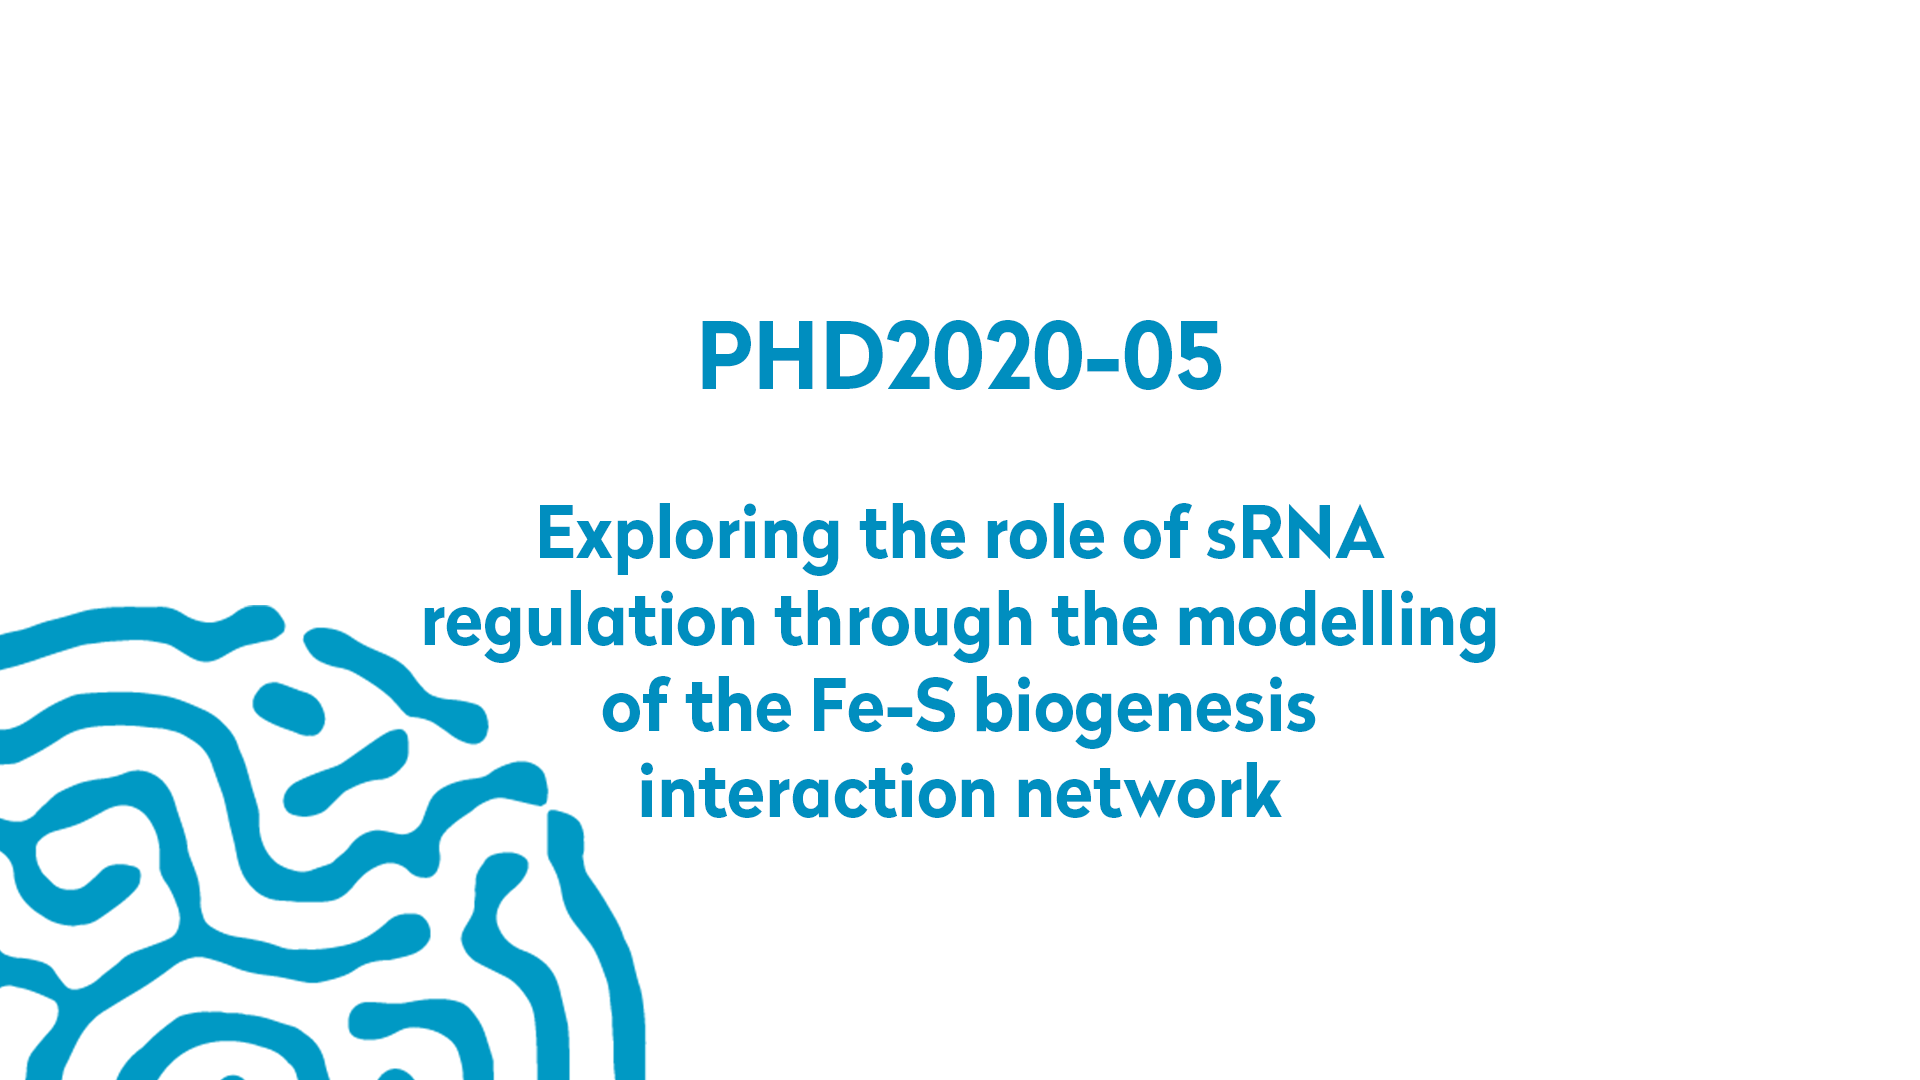 PHD2020-05 | Exploring the role of sRNA regulation through the modelling of the Fe-S biogenesis interaction network